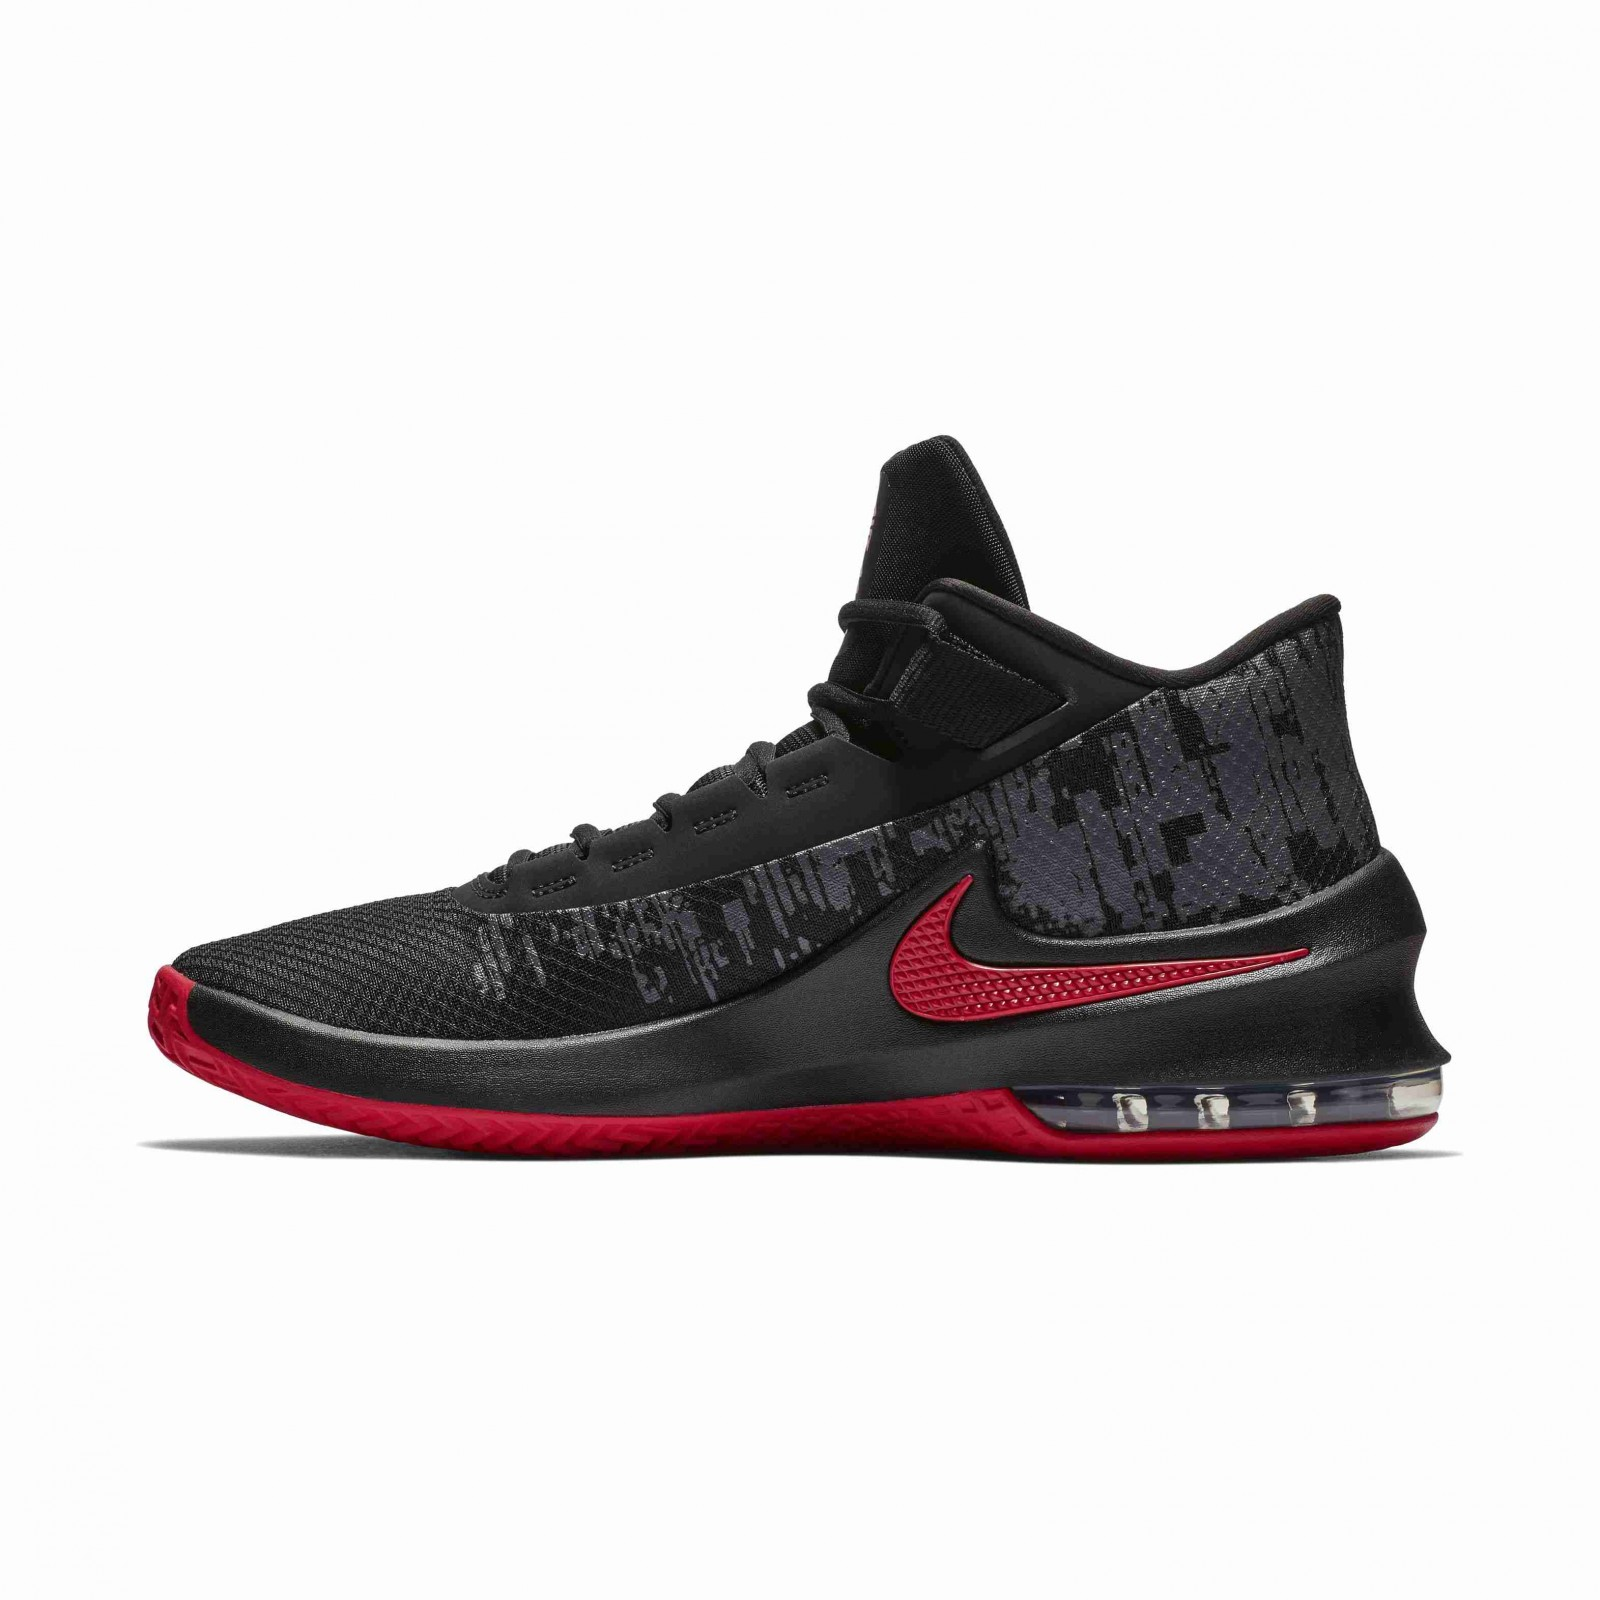 Nike Air max infuriate 2 mid BLACK UNIVERSITY RED-ANTHRACITE - Glami.sk a9588600aac